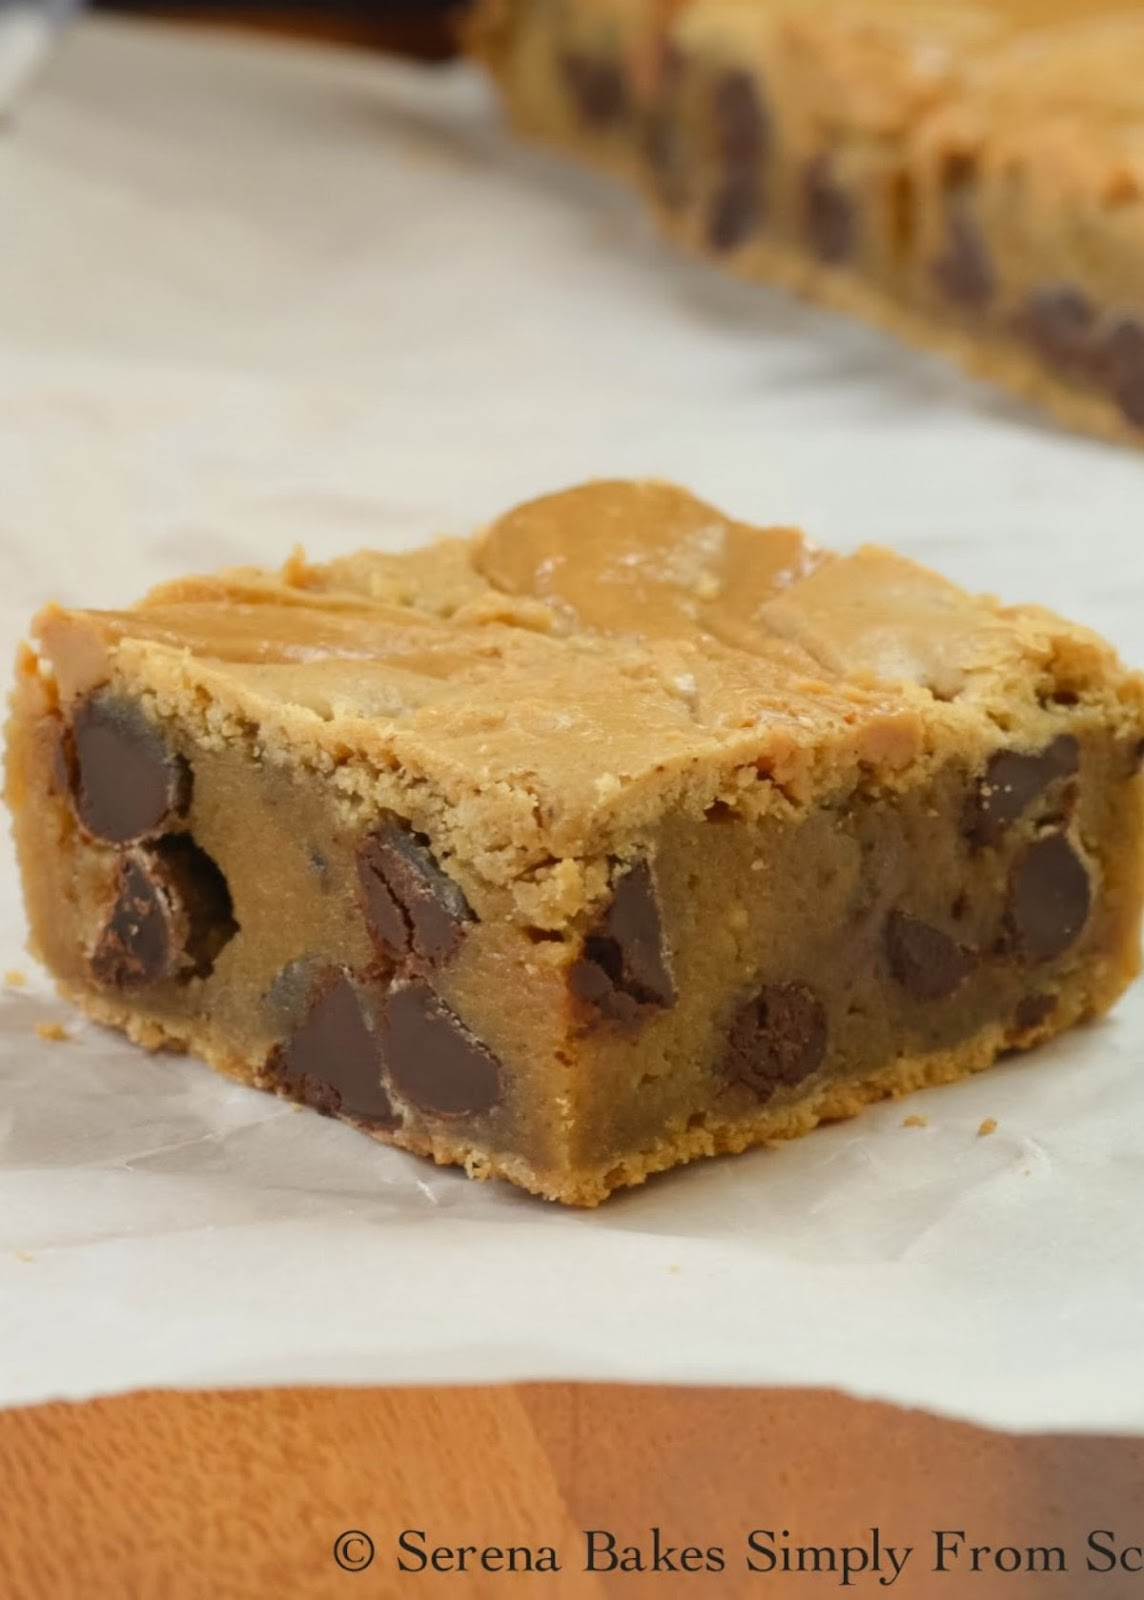 Brown Butter Blondies With Peanut Butter Swirl are a favorite delicious dessert recipe perfect for Super Bowl, Easter, or 4th of July! Great for parties from Serena Bakes Simply From Scratch.